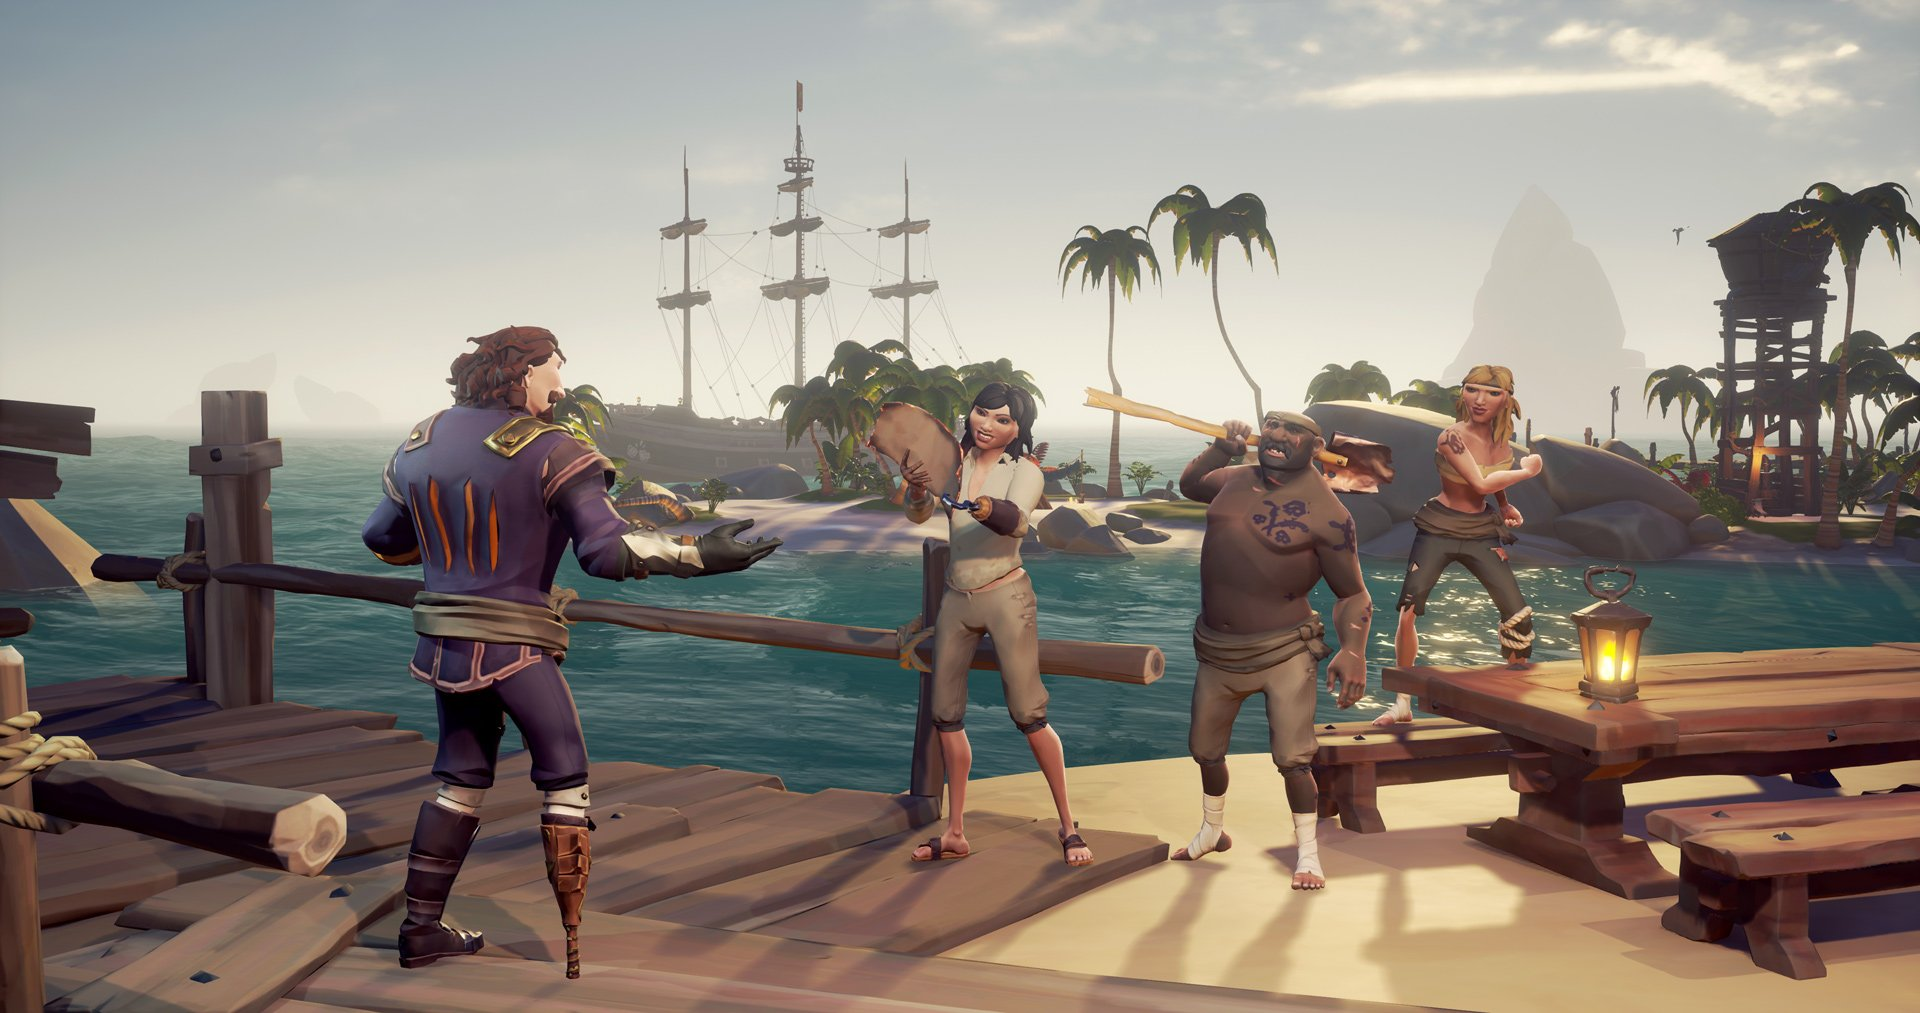 How to get the Sea of Thieves codes for Friends Play Free